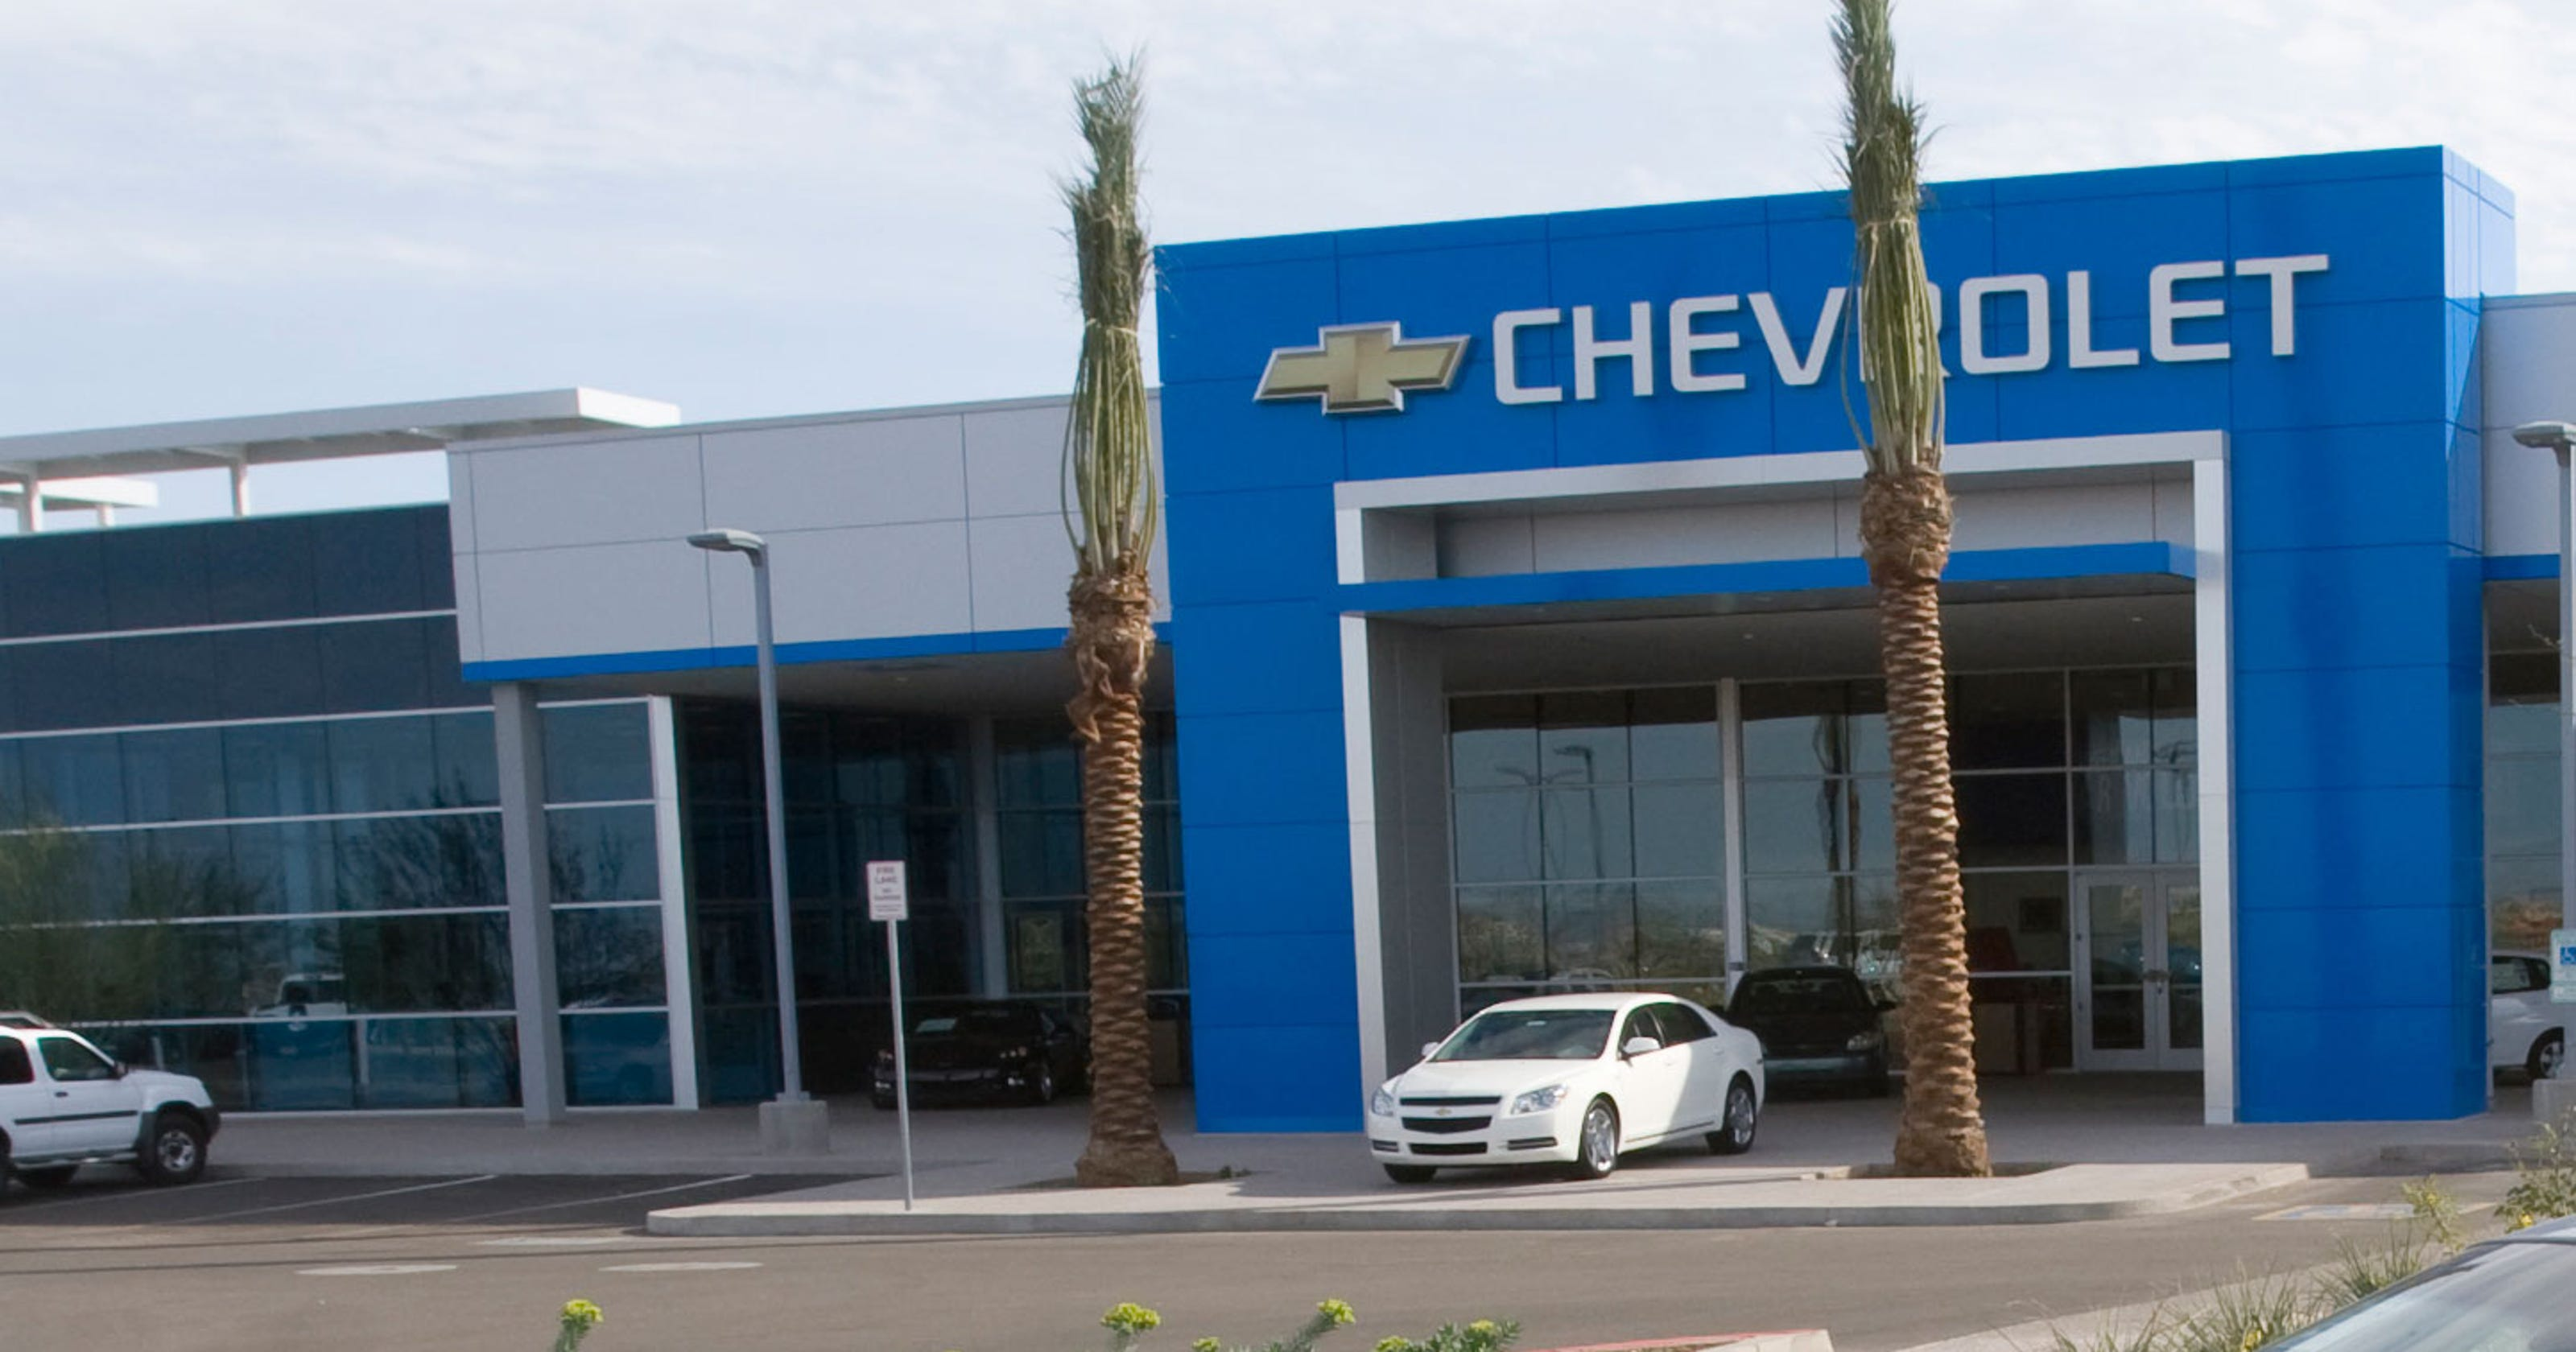 Sands Chevrolet We Sold 2 Recalled Cars Before Repairs Were